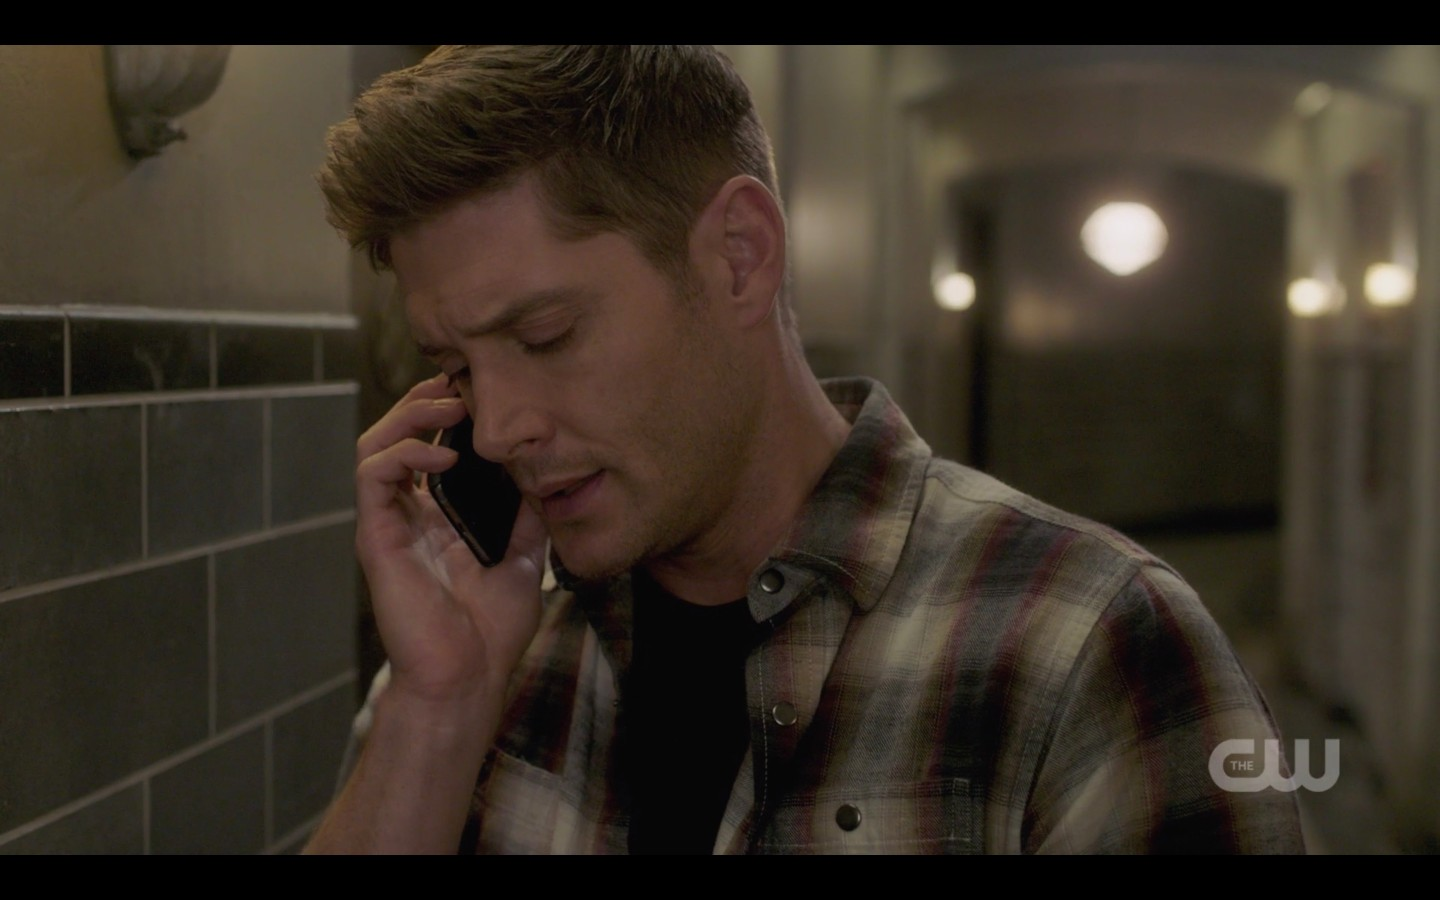 dean on phone with sam hurting spn 1408